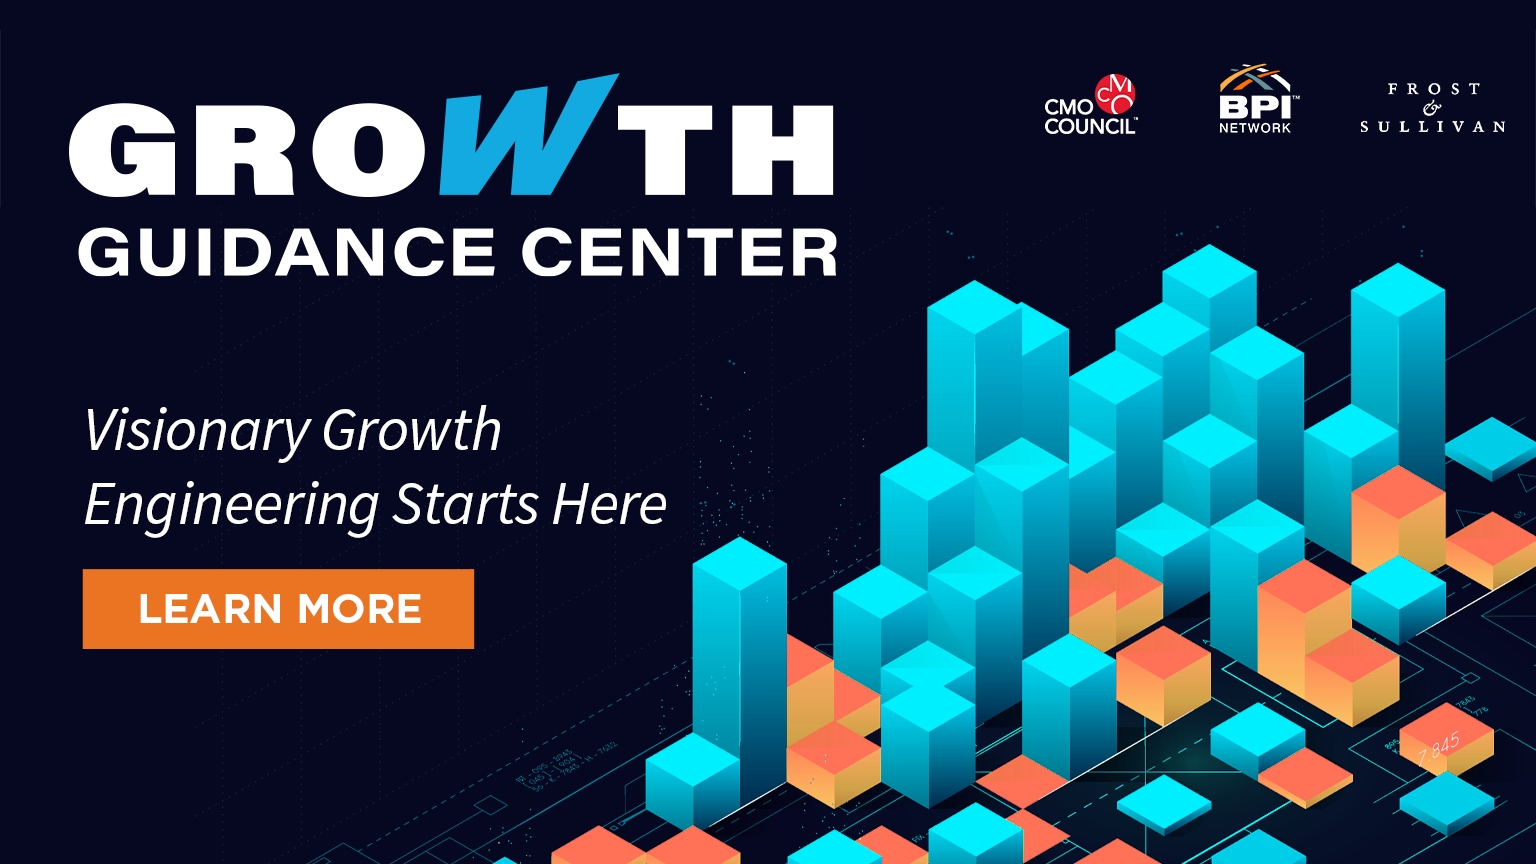 Growth Guidance Center, Visionary Growth Engineering Starts Here